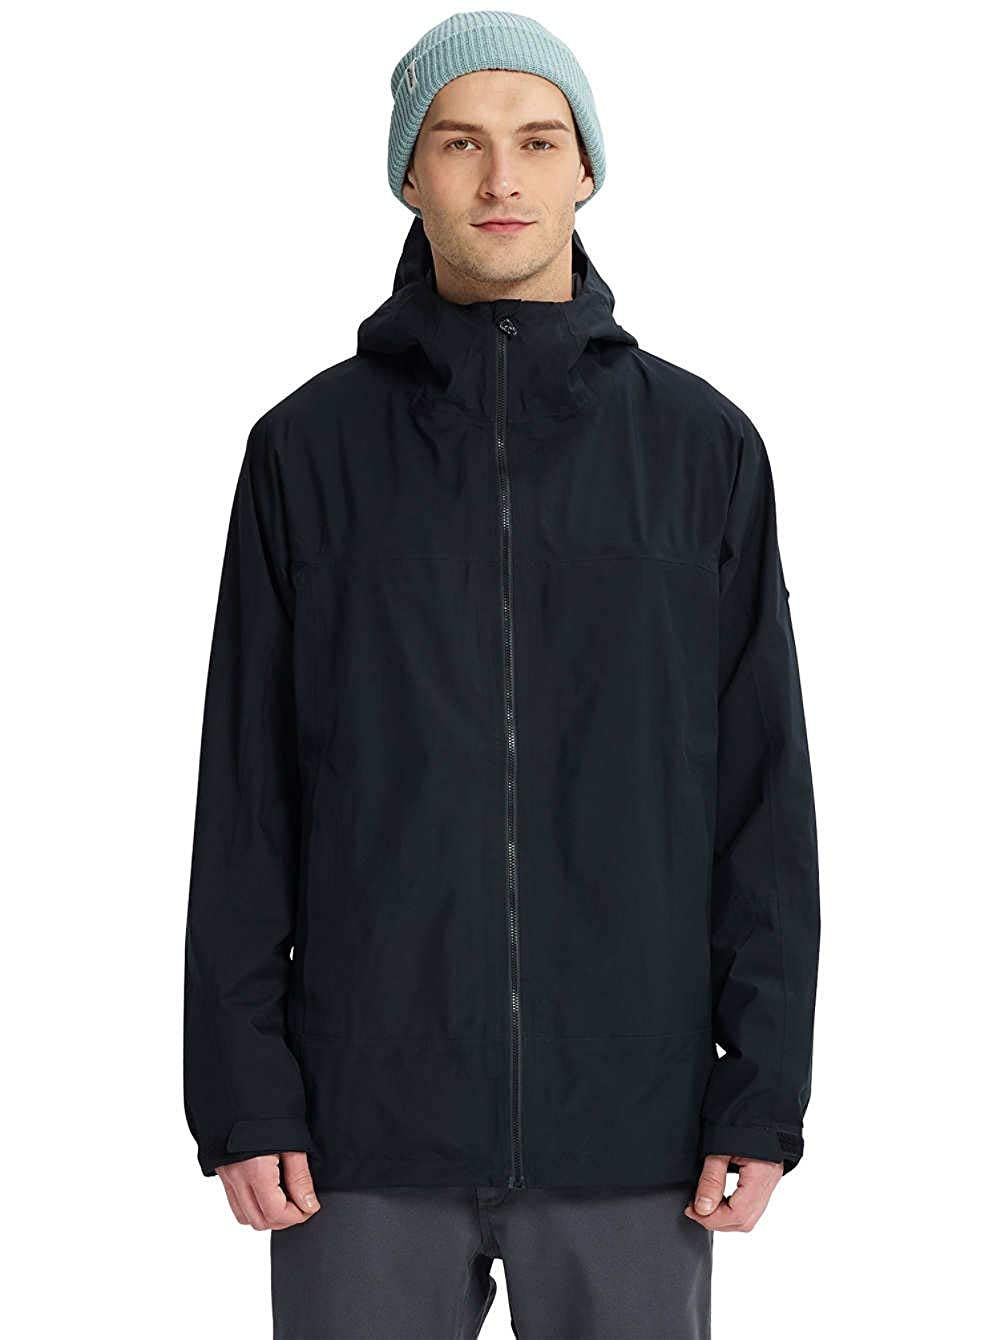 Burton Gore-TEX PACKRITE RAIN JKT True Black Giacca AI18